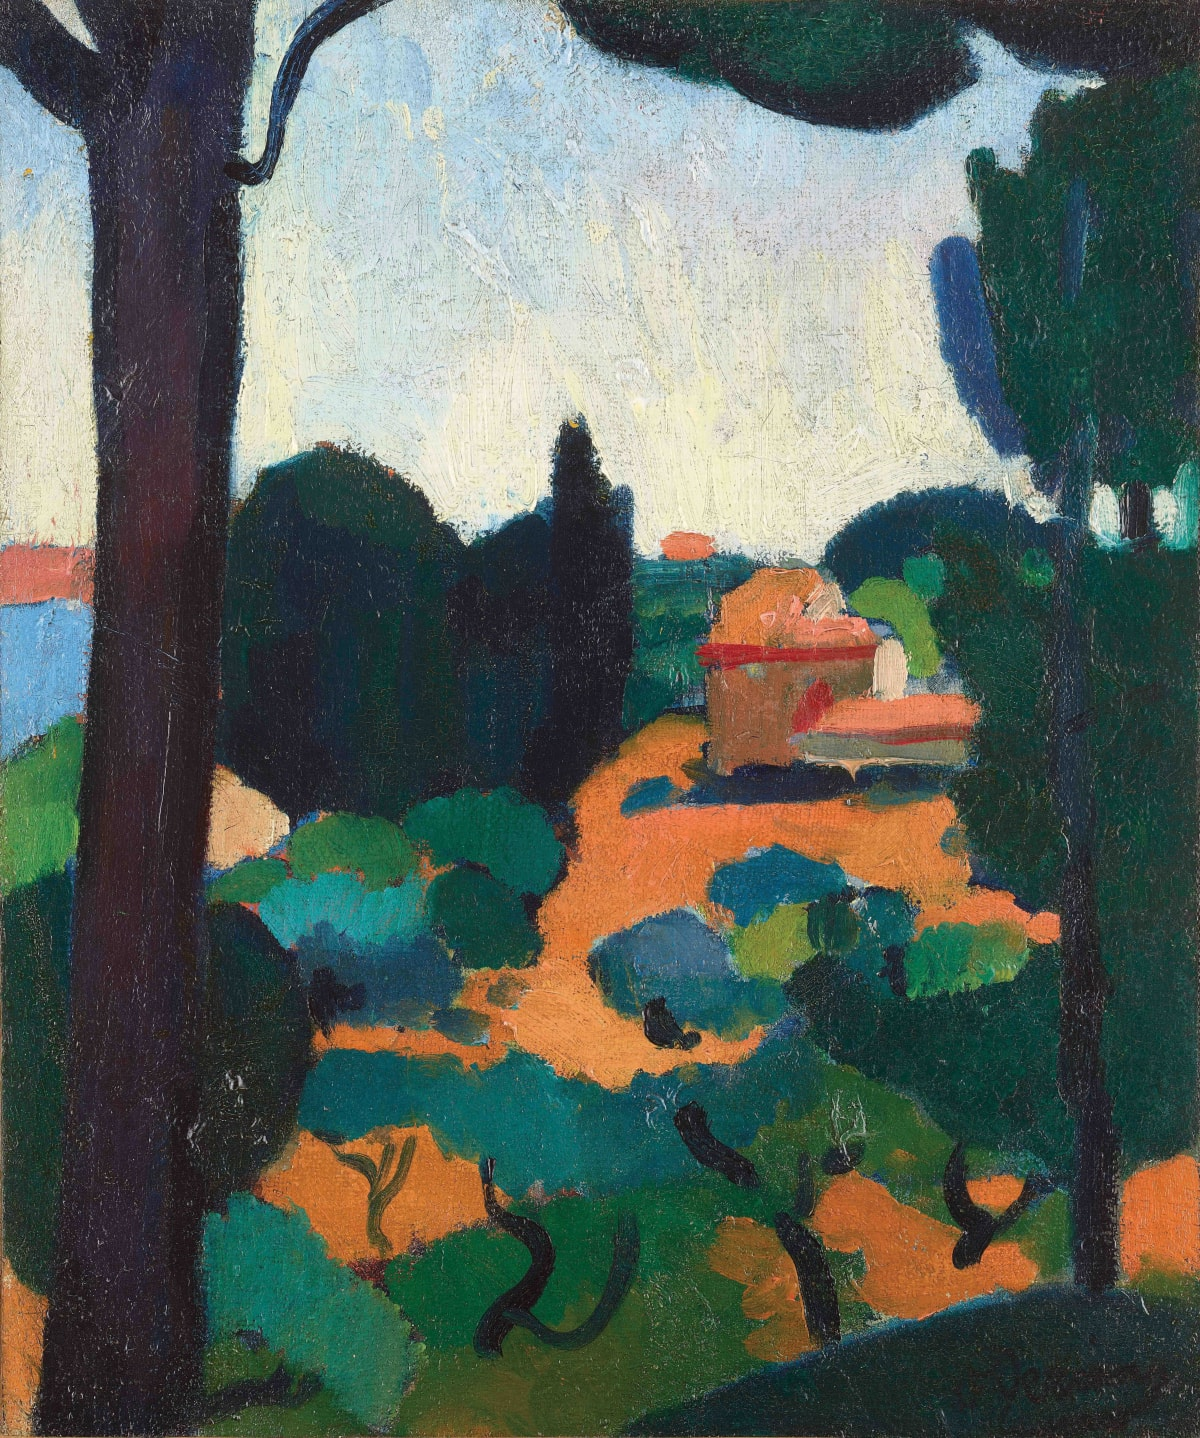 André Derain Paysage à Cassis, 1907 Oil on canvas 46 x 38.5 cm, 18 1/8 x 15 1/8 inches signed lower right